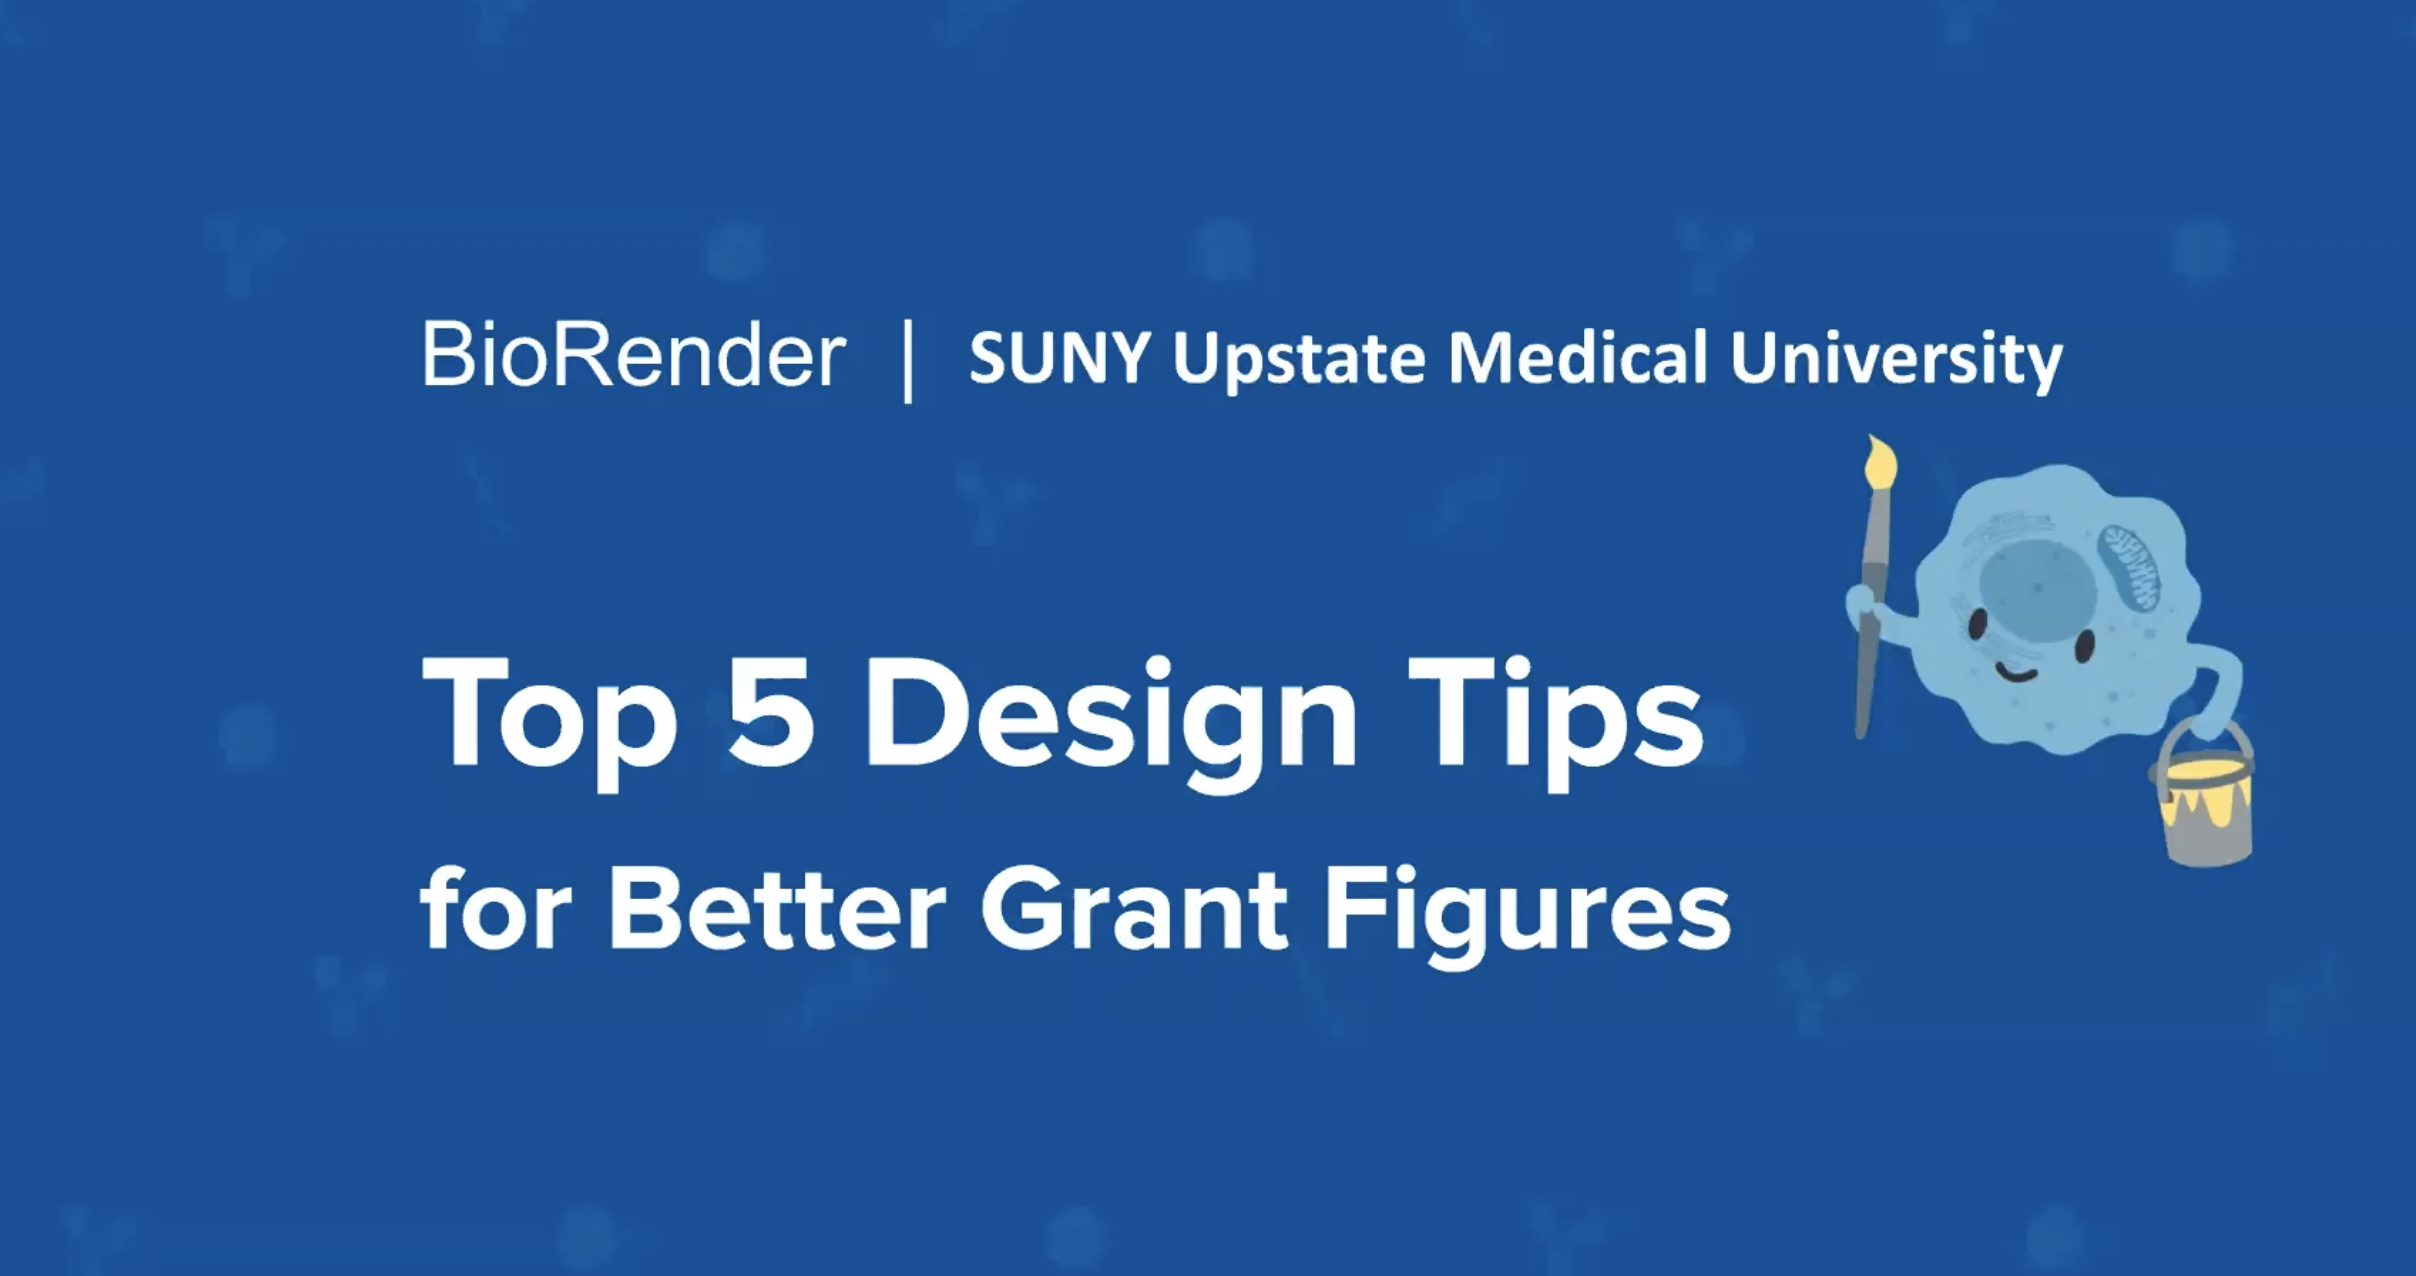 Special Topic @ SUNY Upstate: Grant Figures